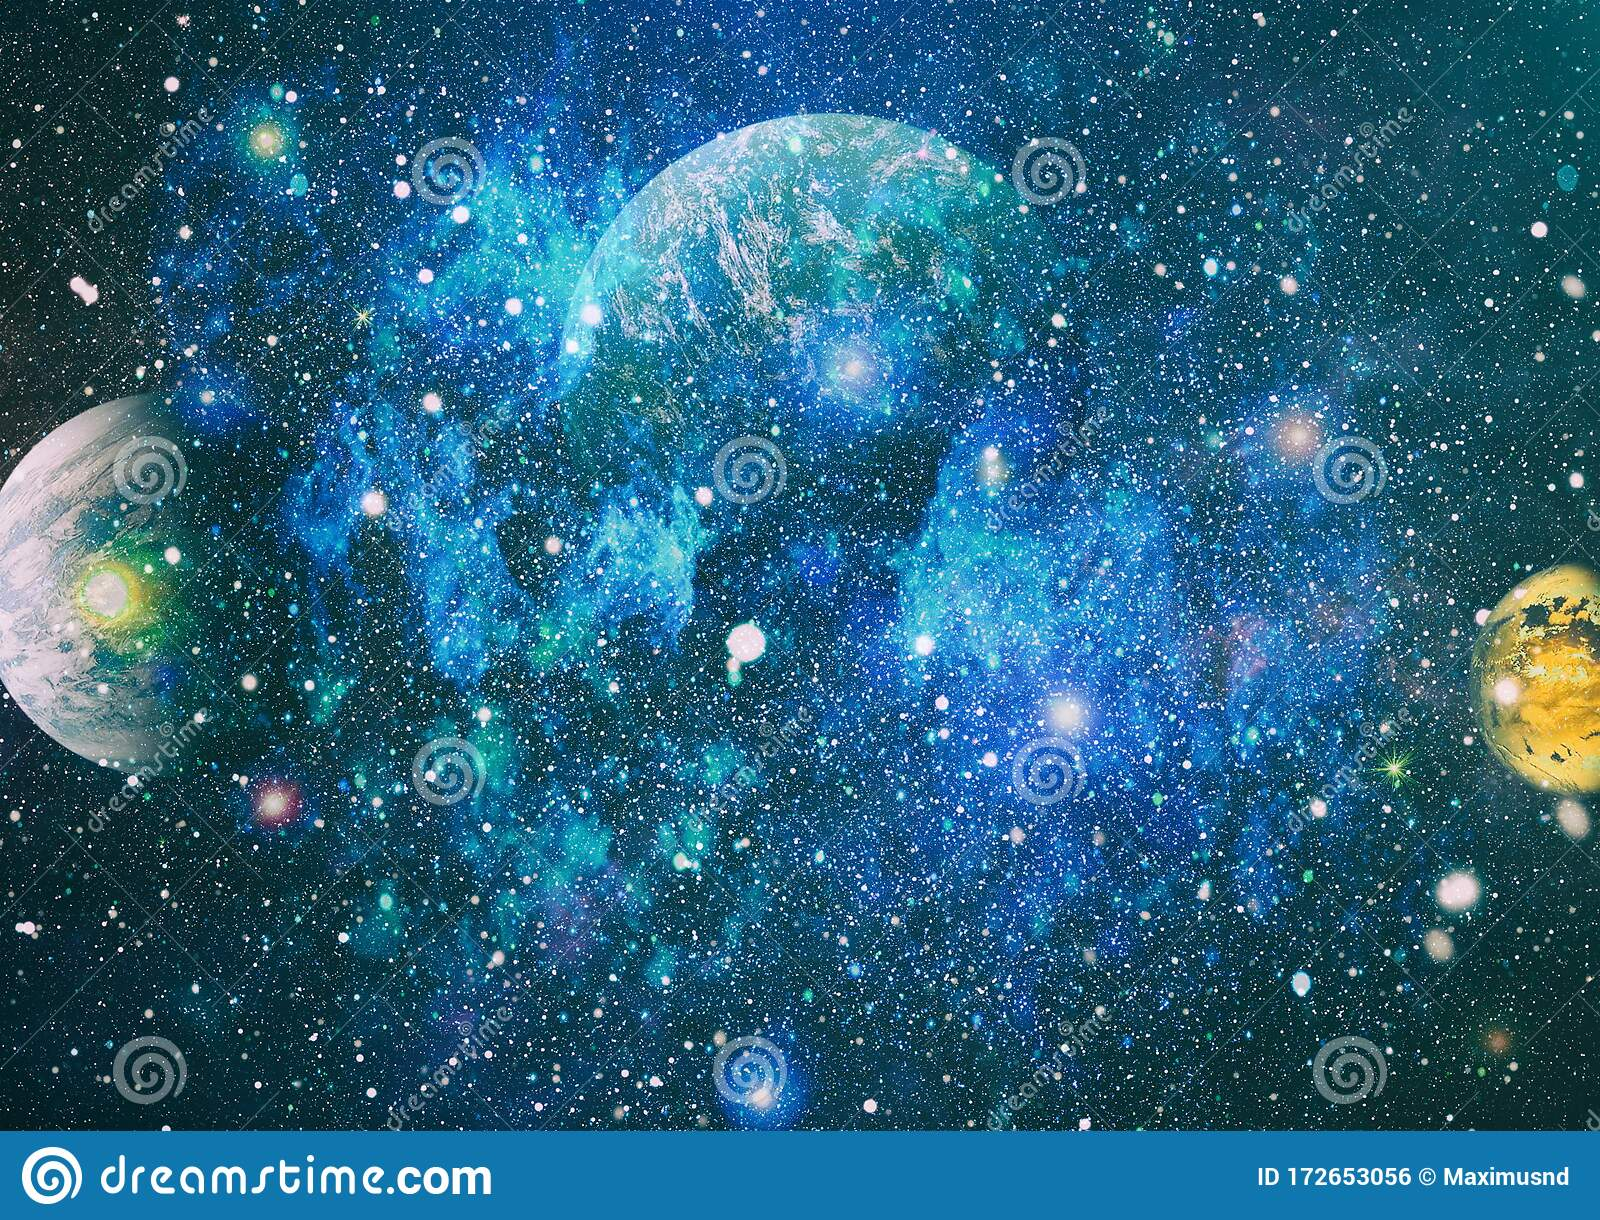 dreamscape galaxy deep space science fiction fantasy high resolution ideal wallpaper elements image furnished 172653056